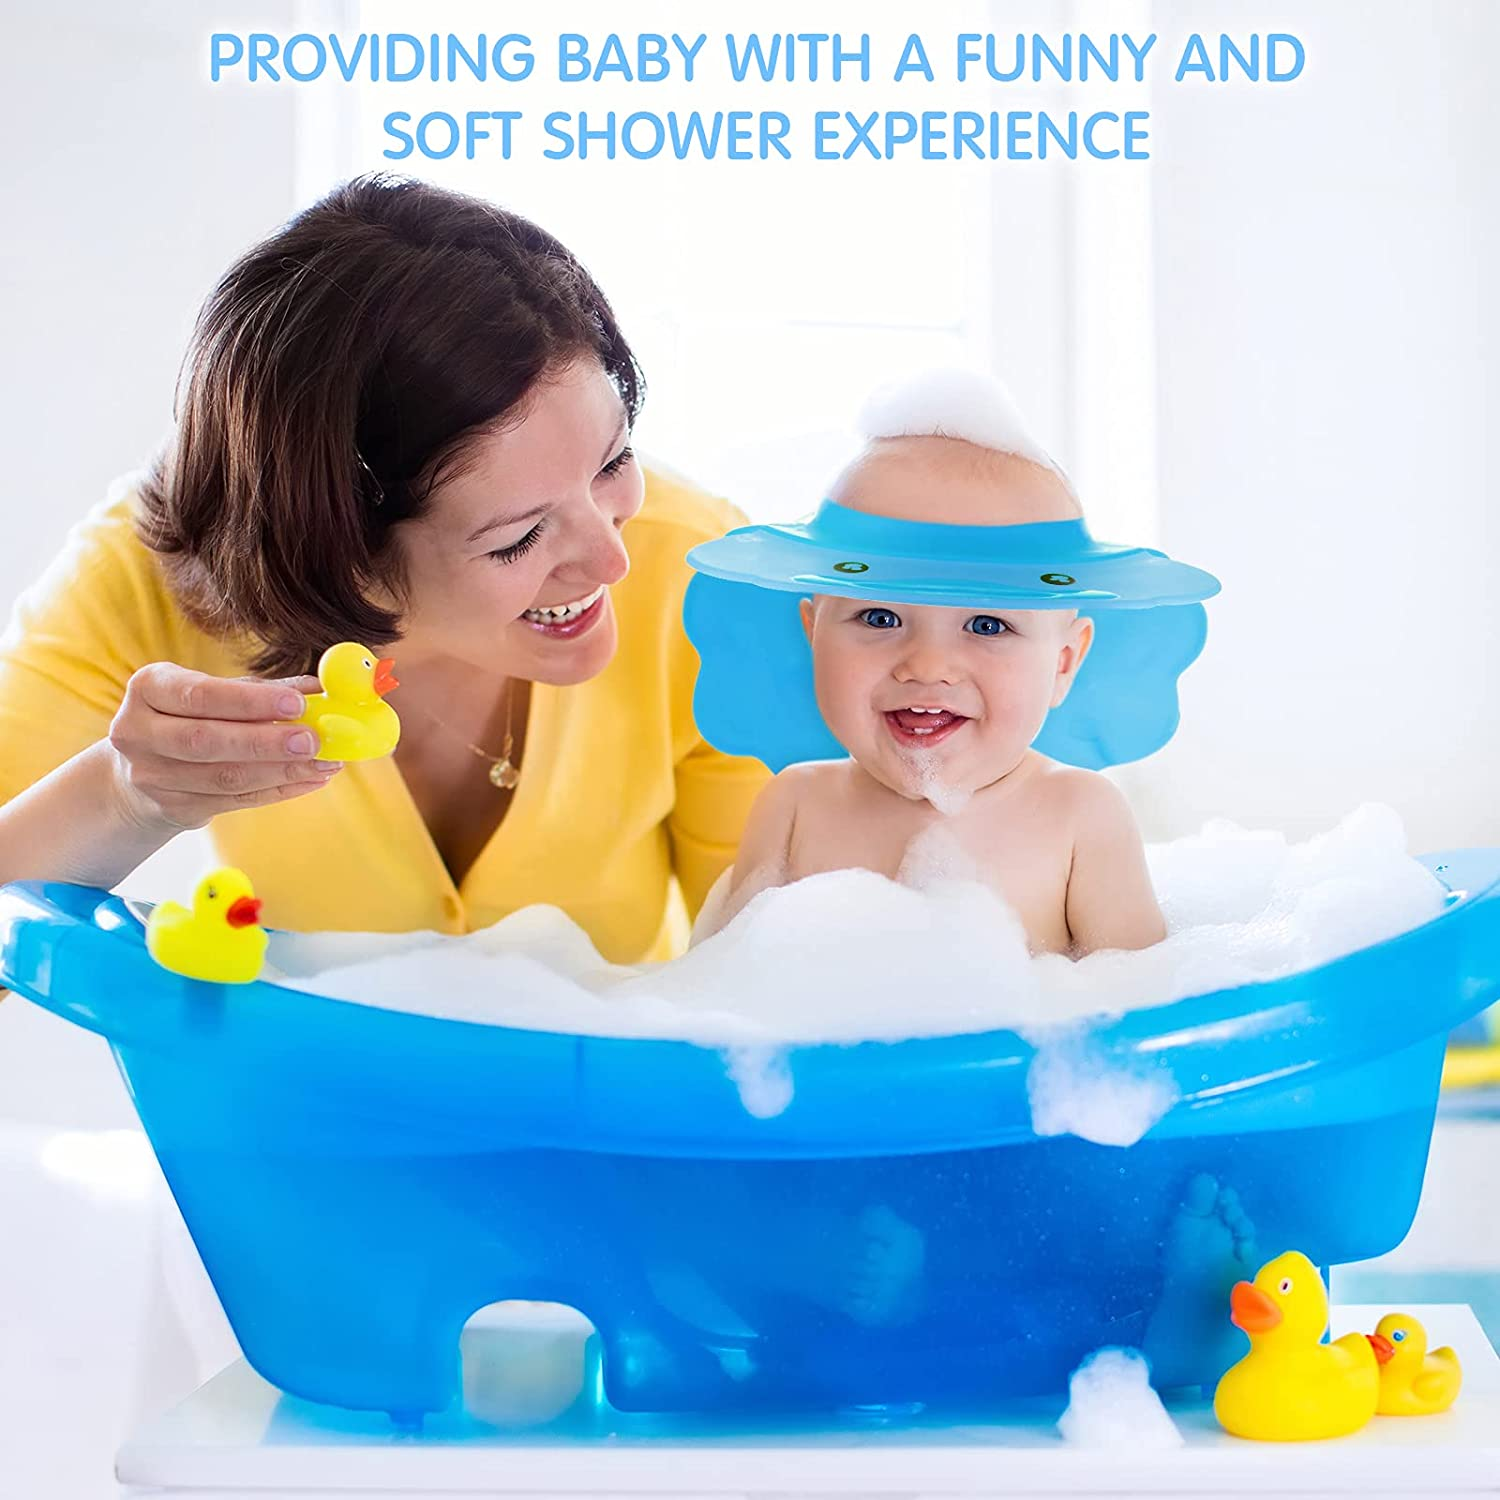 2 Pieces Baby Shower Cap Visor with Ear Protection Waterproof Shampoo Shower Cap Adjustable Silicone Shampoo Bath Hat for Infants Toddlers Kids Children (Blue)